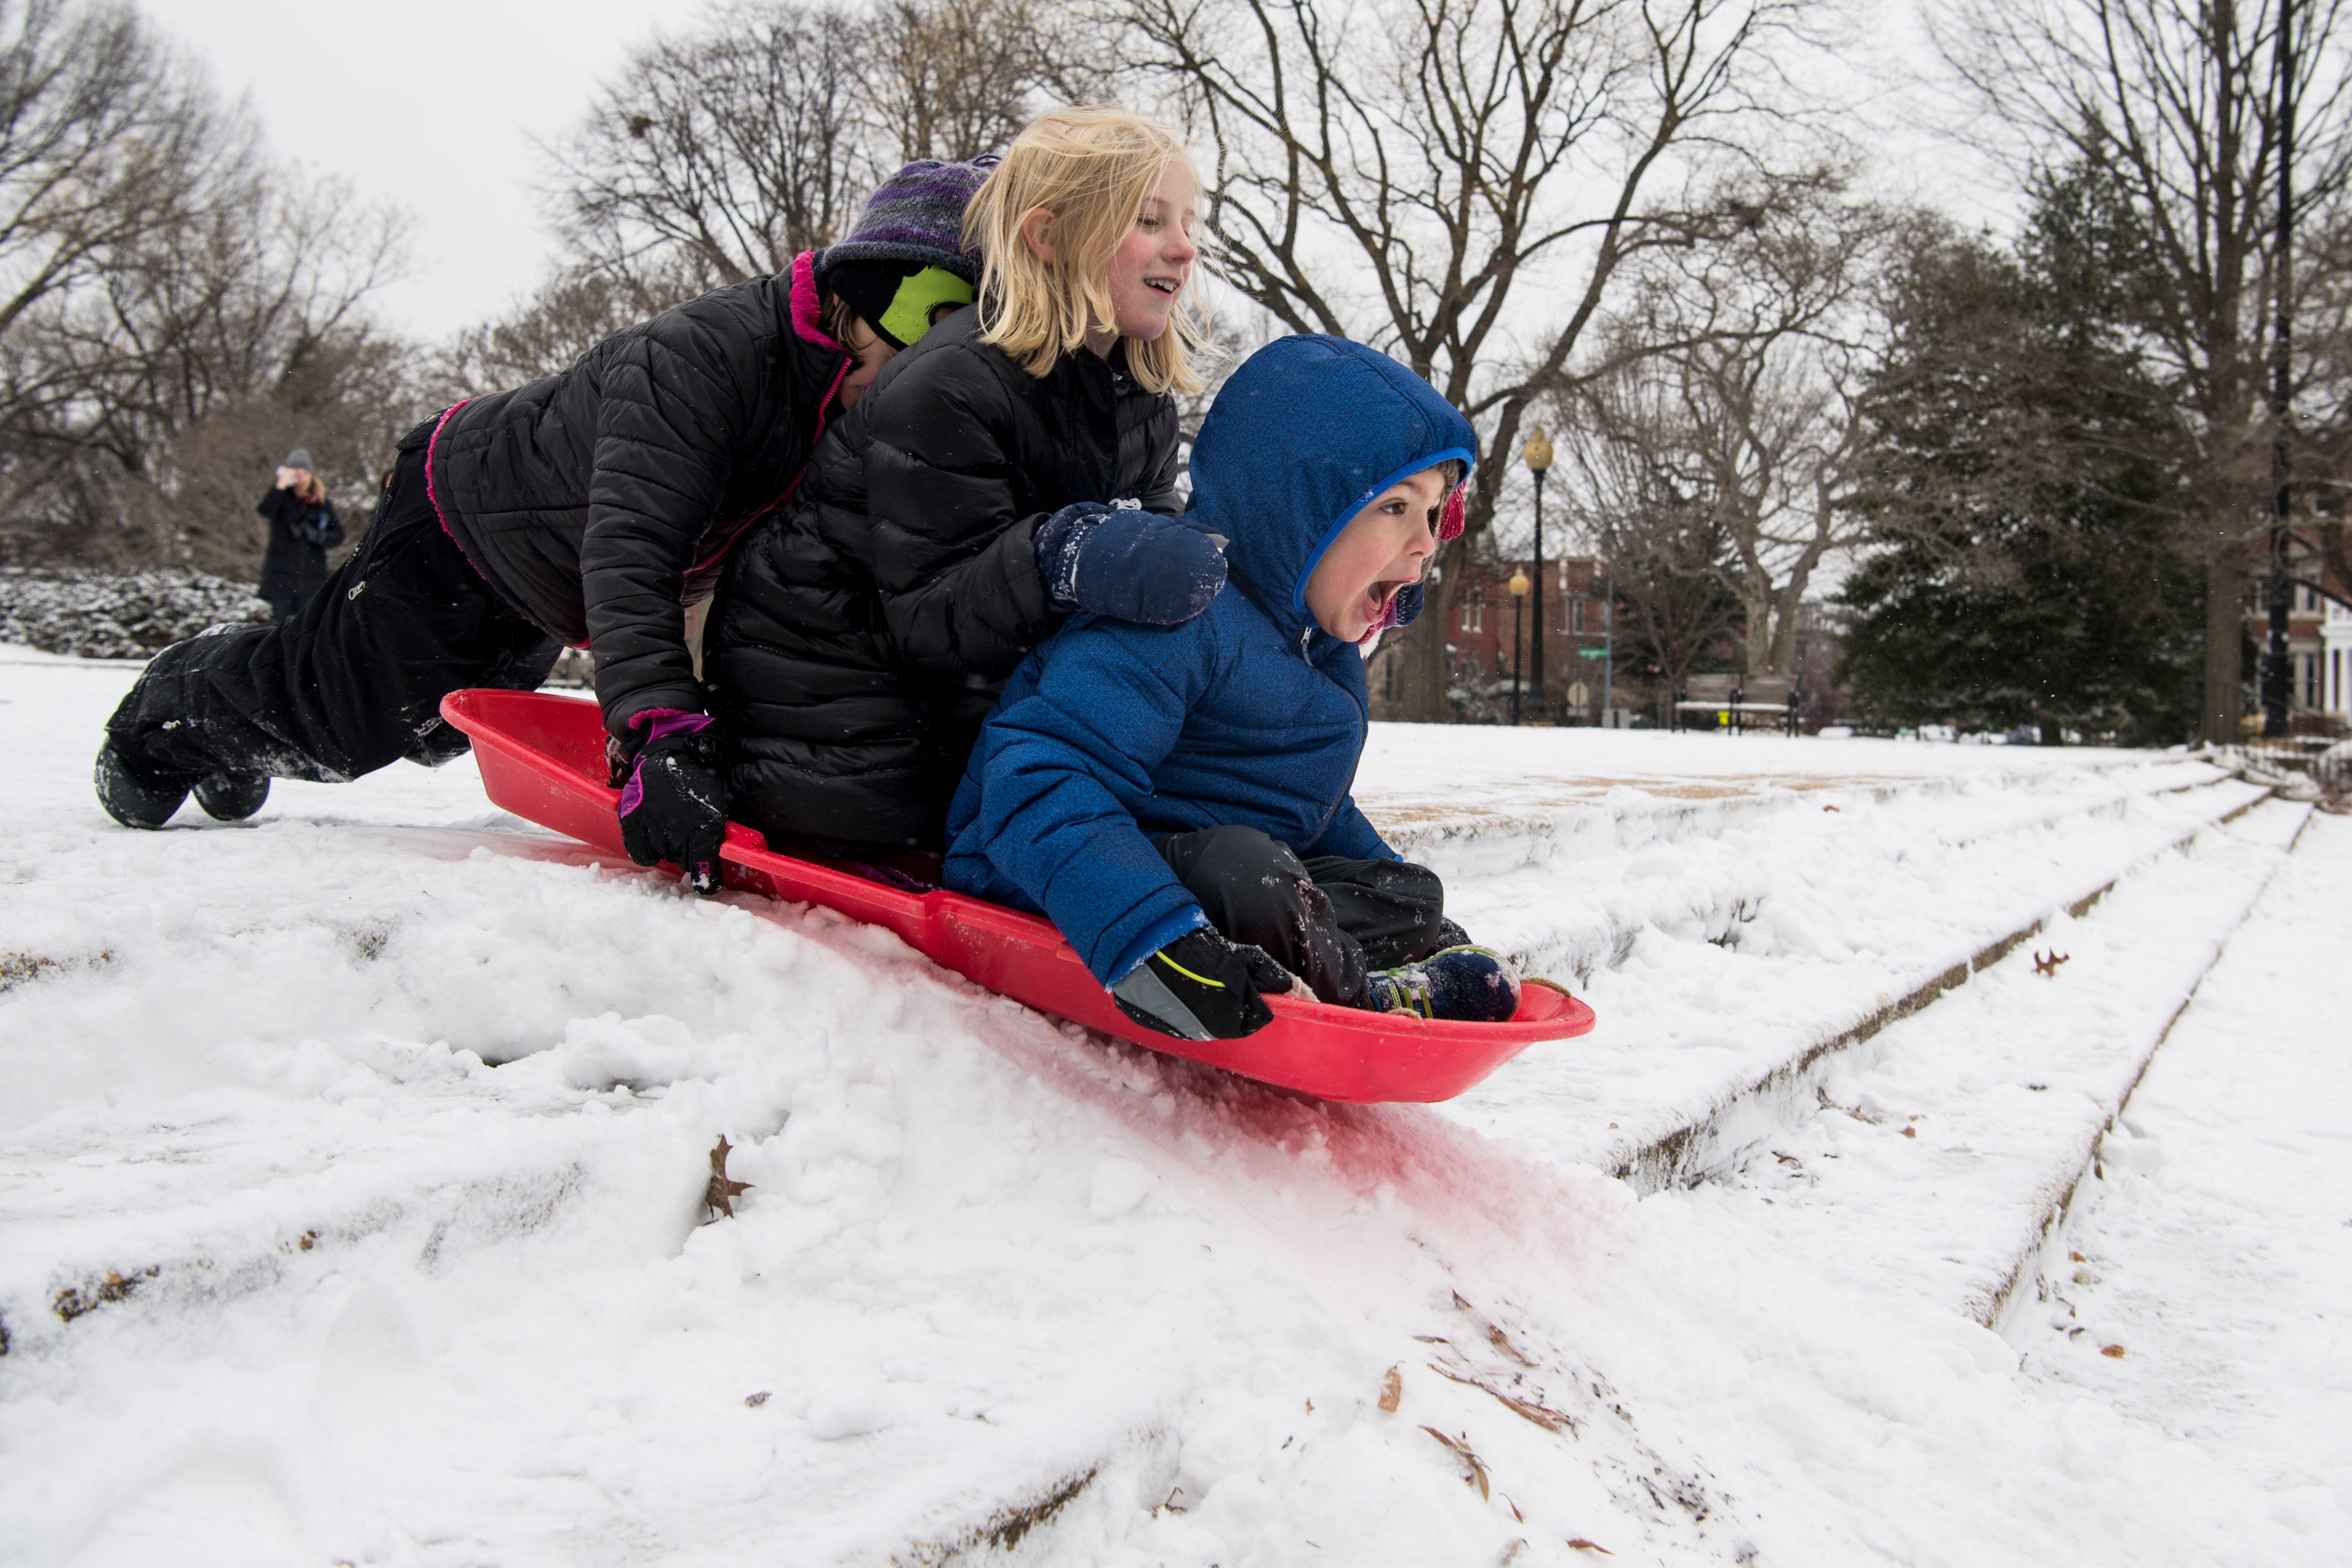 Robbie Schmieder, 5, right, Camilla Minelli, 7, center, and Iris Drager, 9, ride a sled down a small set of stairs in Lincoln